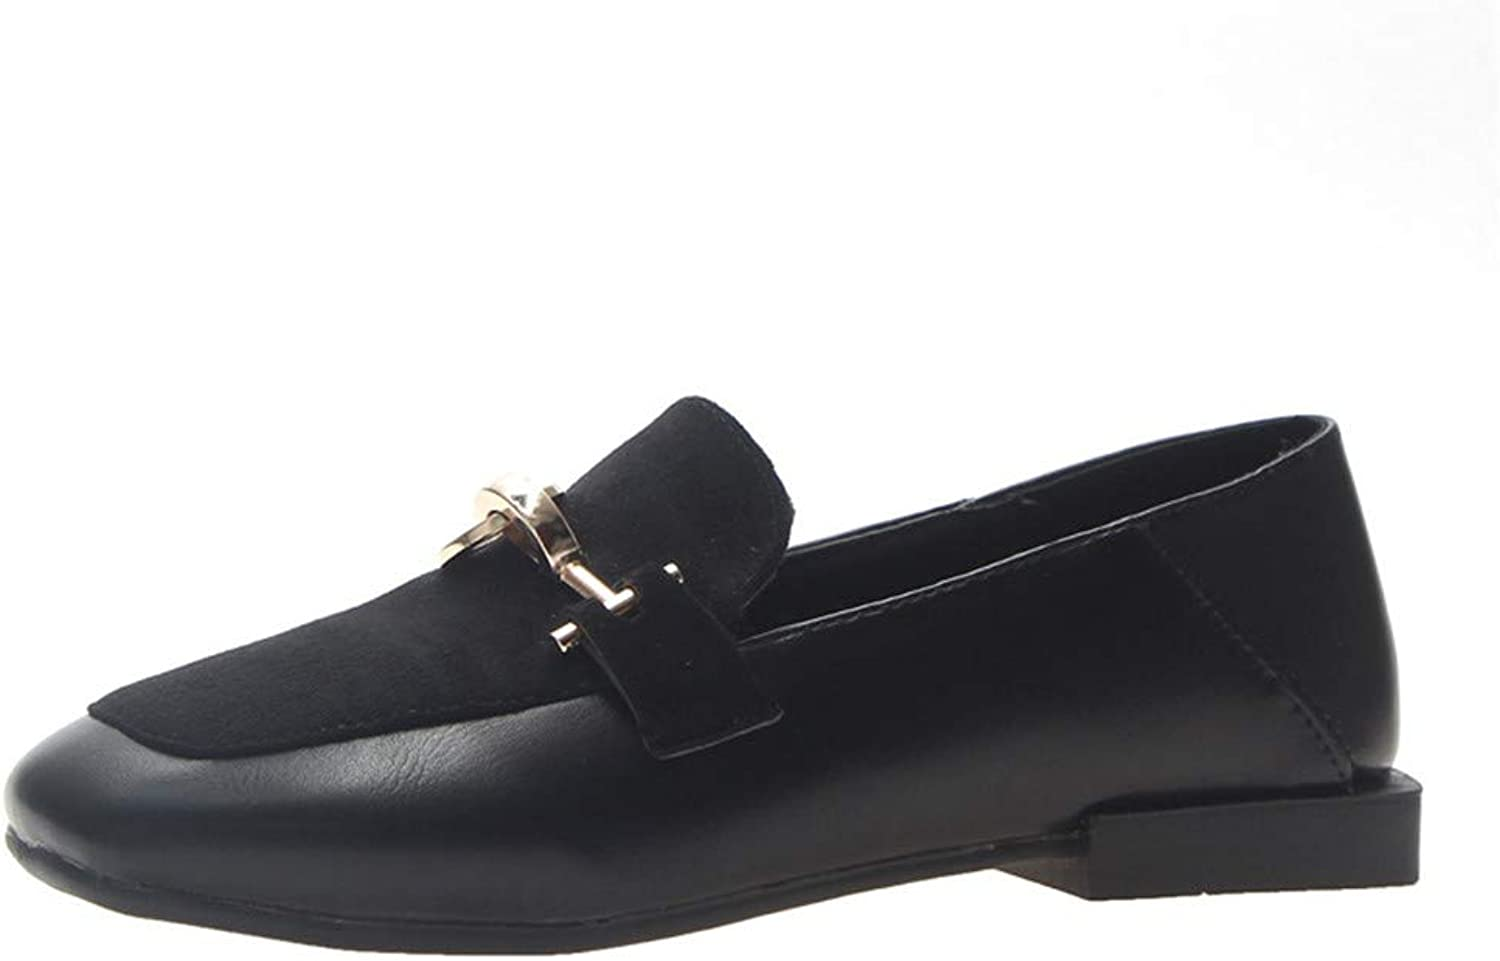 Quality.A Women's shoes Basic Flat shoes Fashion Casual shoes Walking shoes Loafers